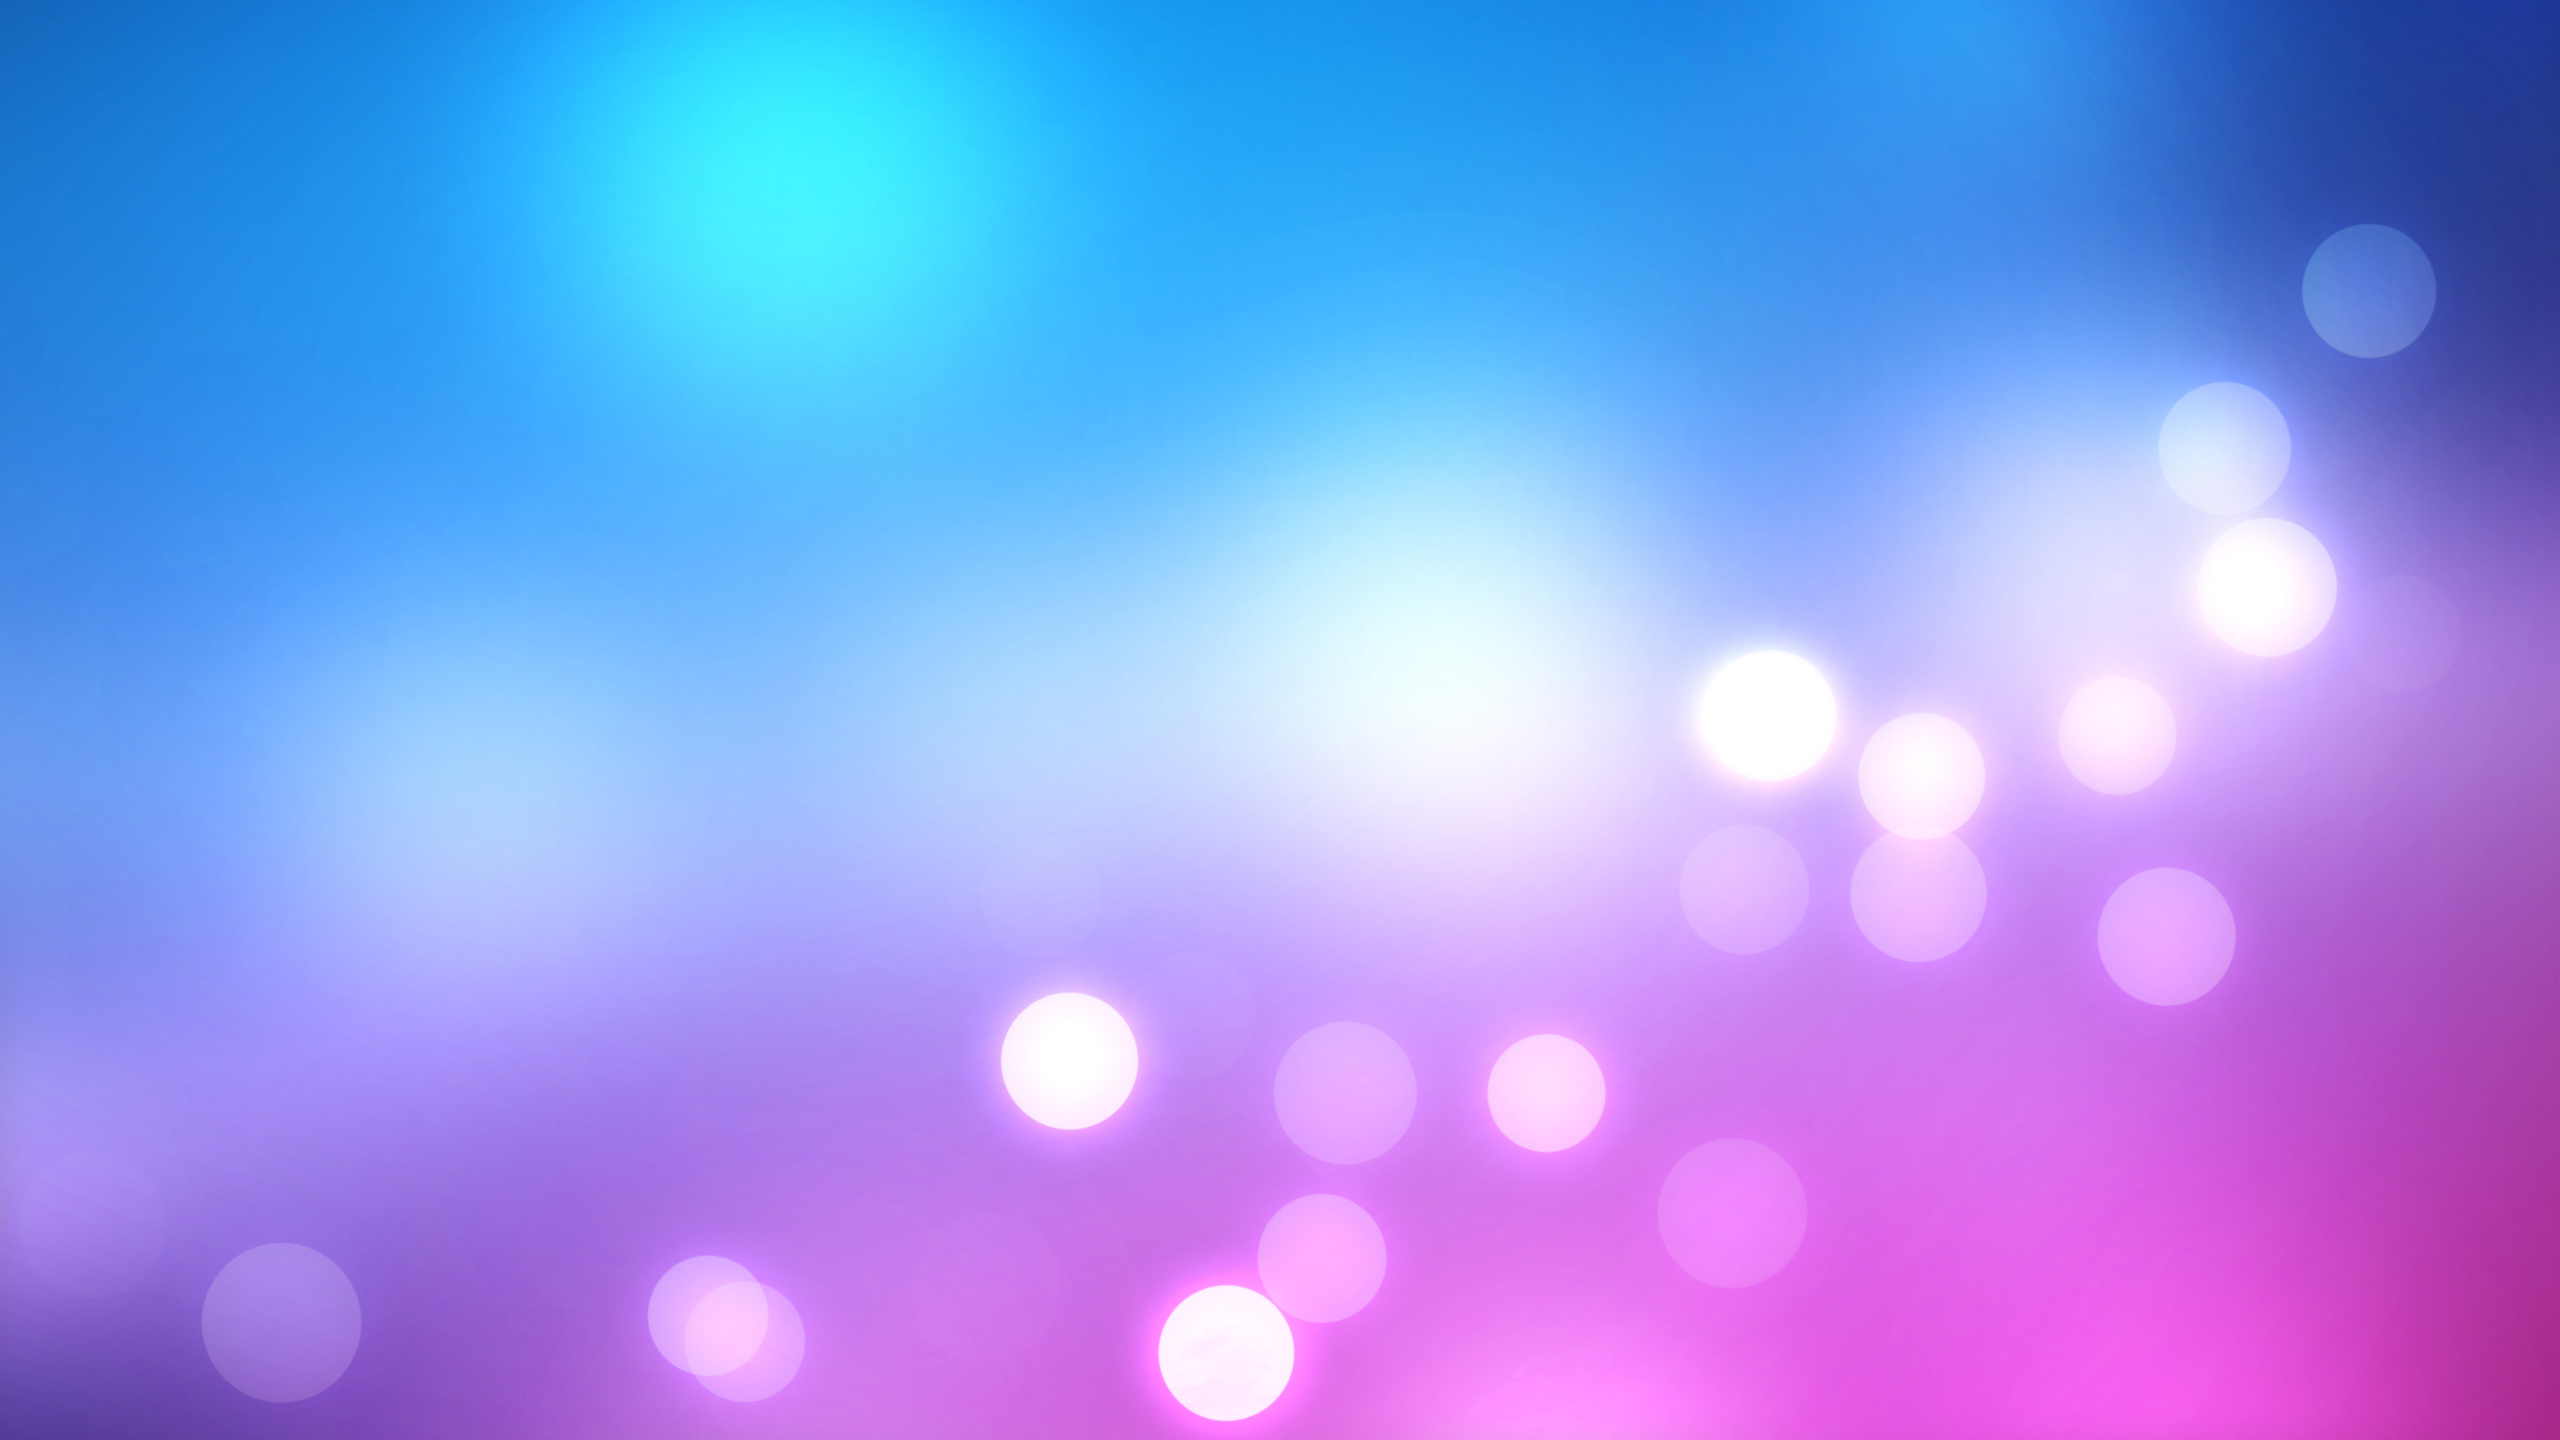 purple wallpapers blue lights bokeh wallpaper desktop 2560x1440